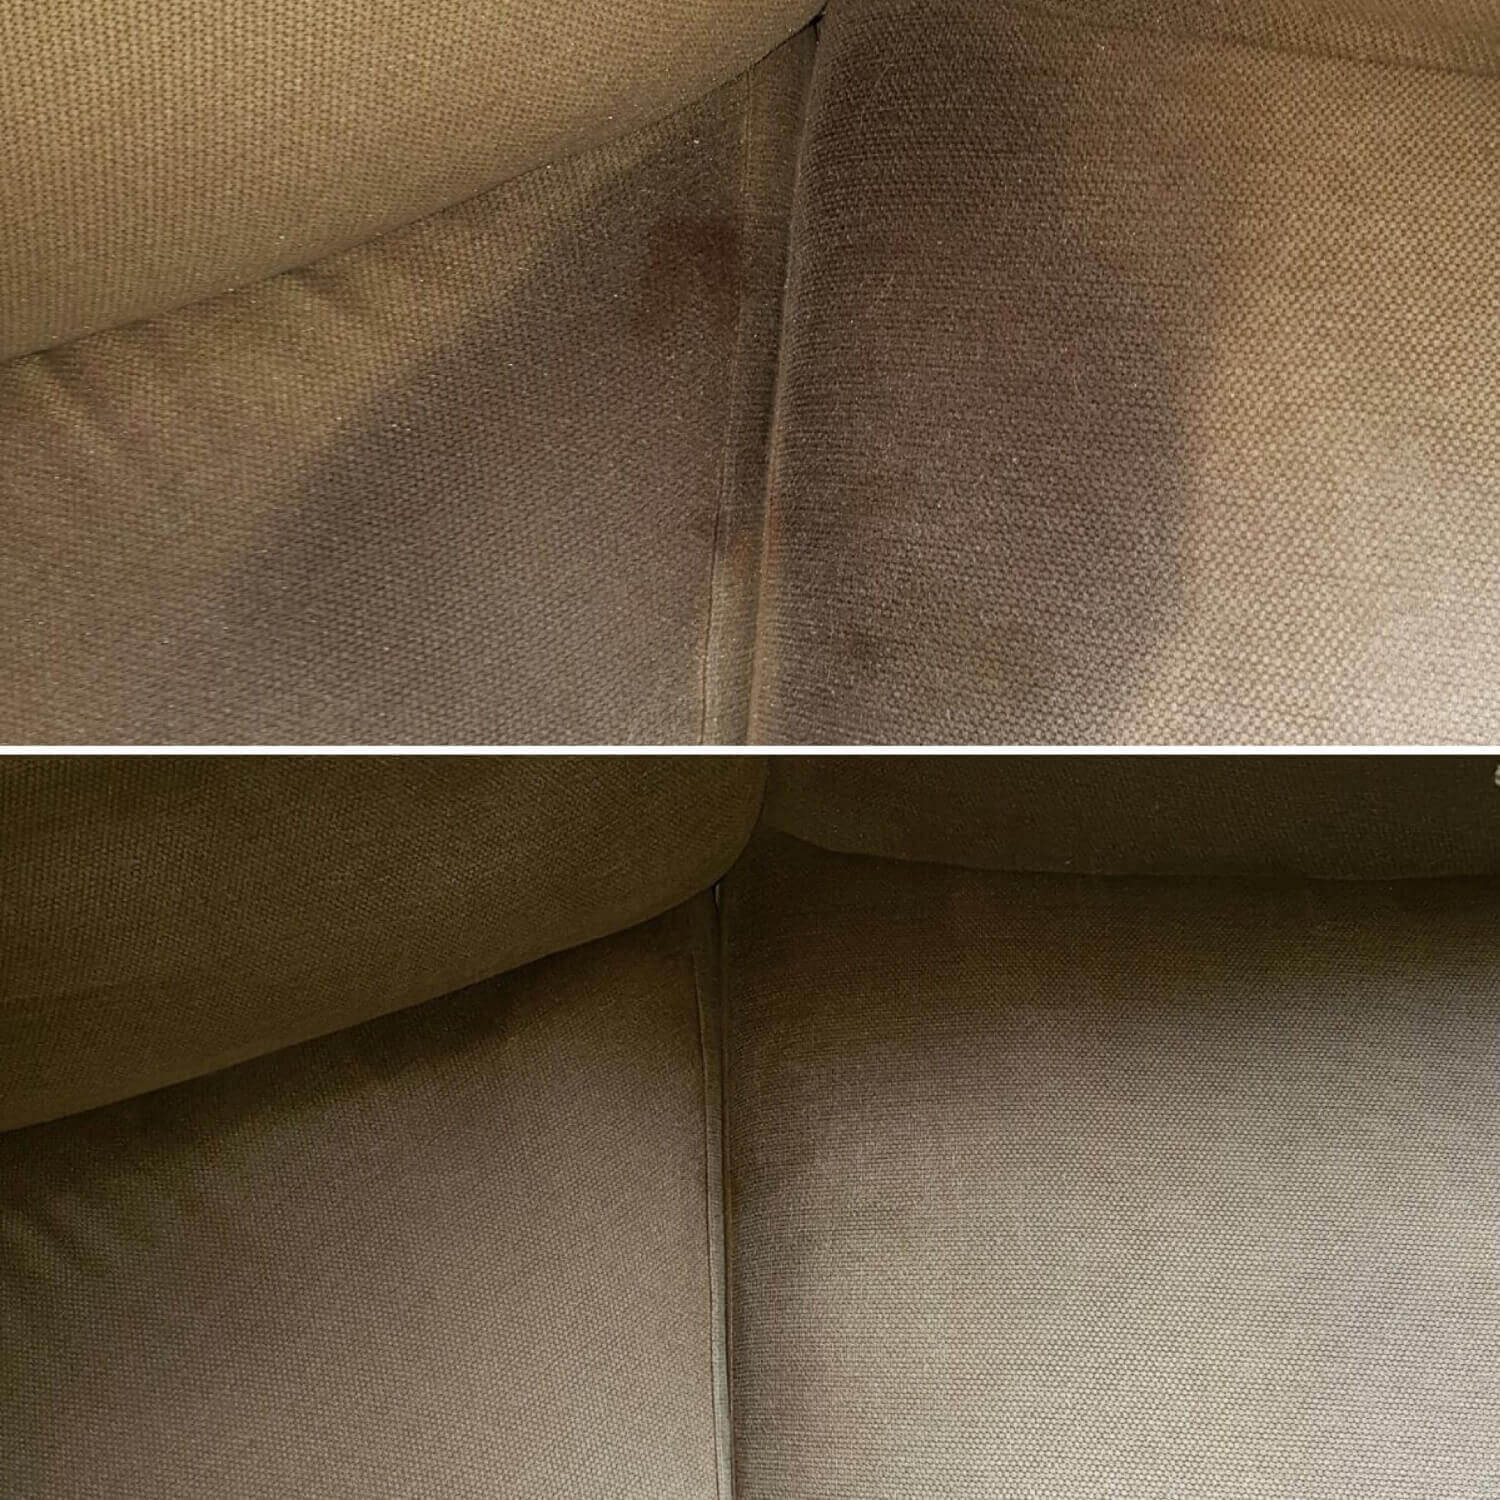 upholstery cleaning Tunbridge Wells